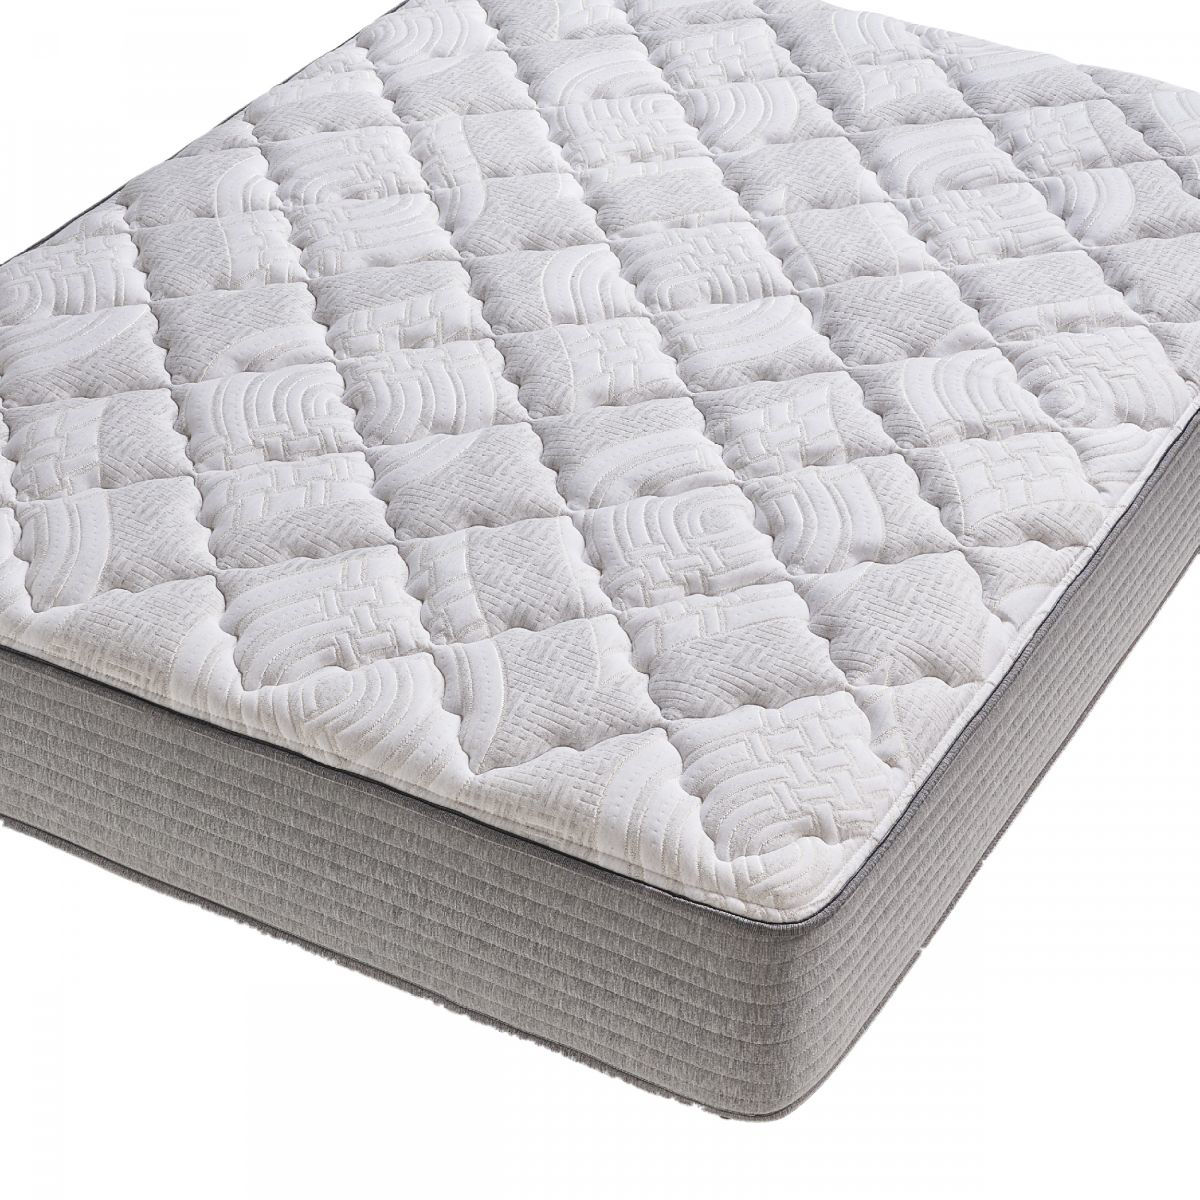 Picture of DELILAH LUXURY FIRM TWIN XL MATTRESS